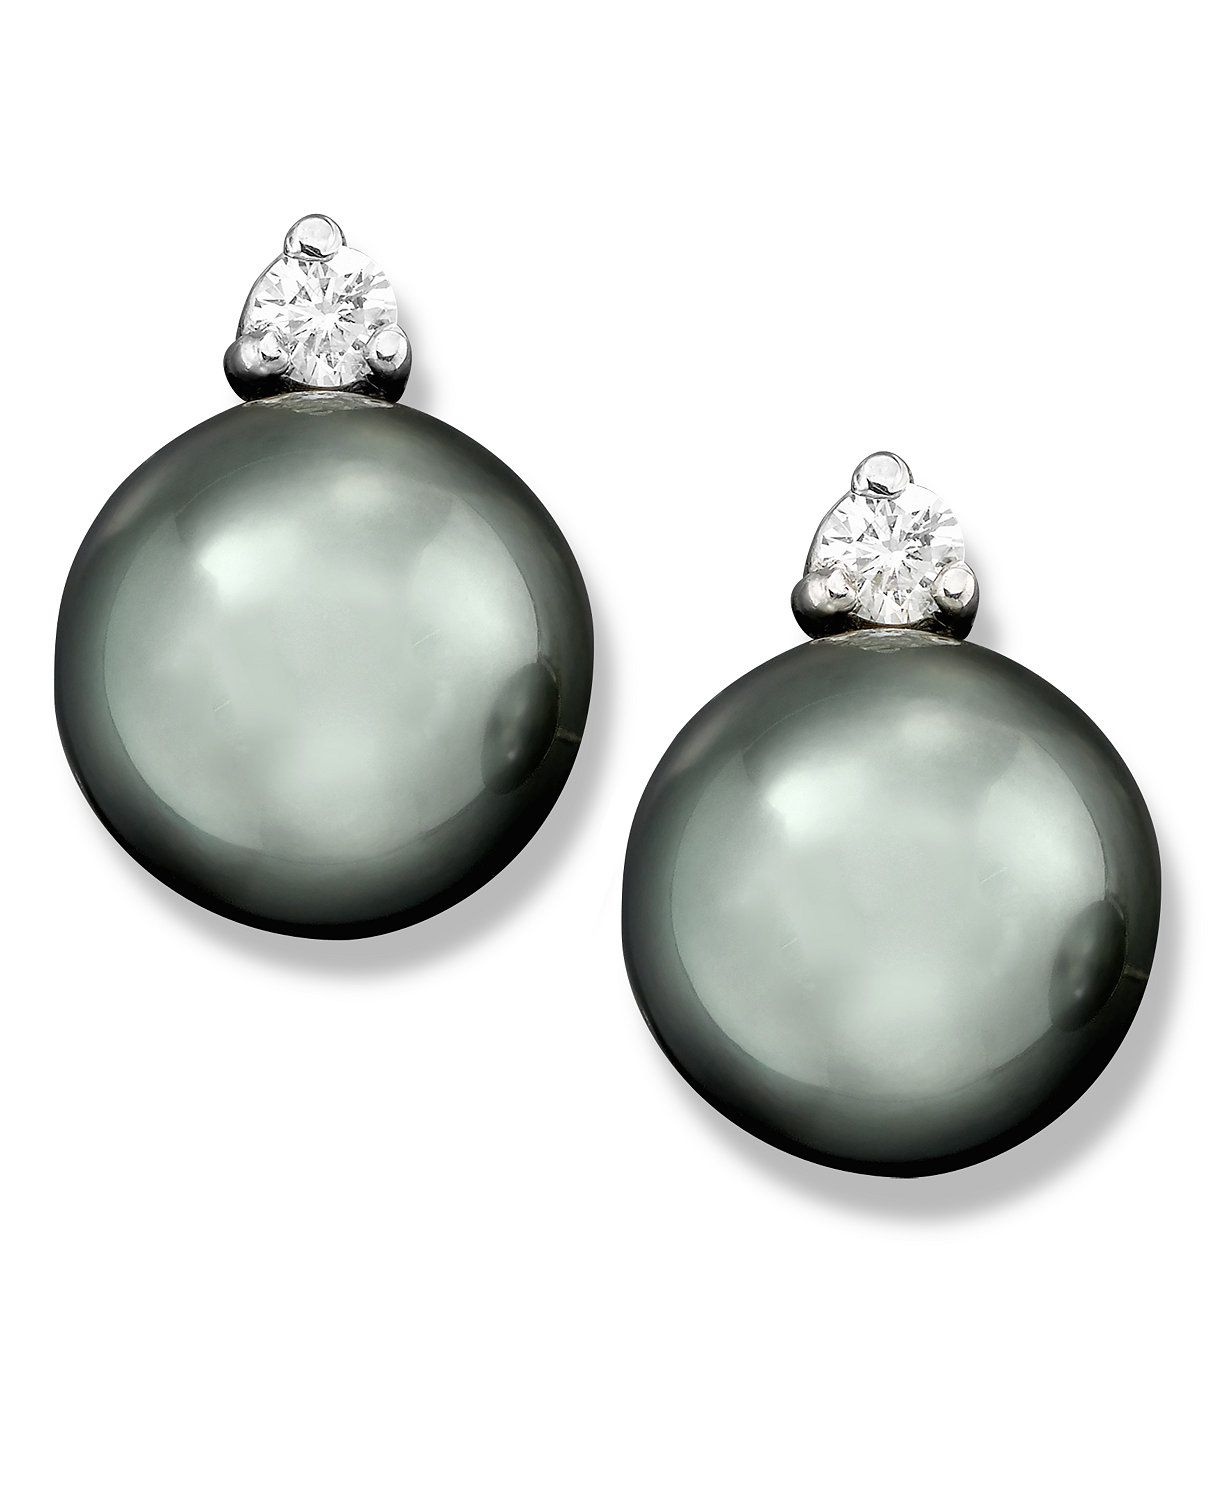 Cultured Tahitian Black Pearl (8mm) and Diamond (1/10 ct. t.w.) Stud Earrings in 14k White Gold - Earrings - Jewelry & Watches - Macy's